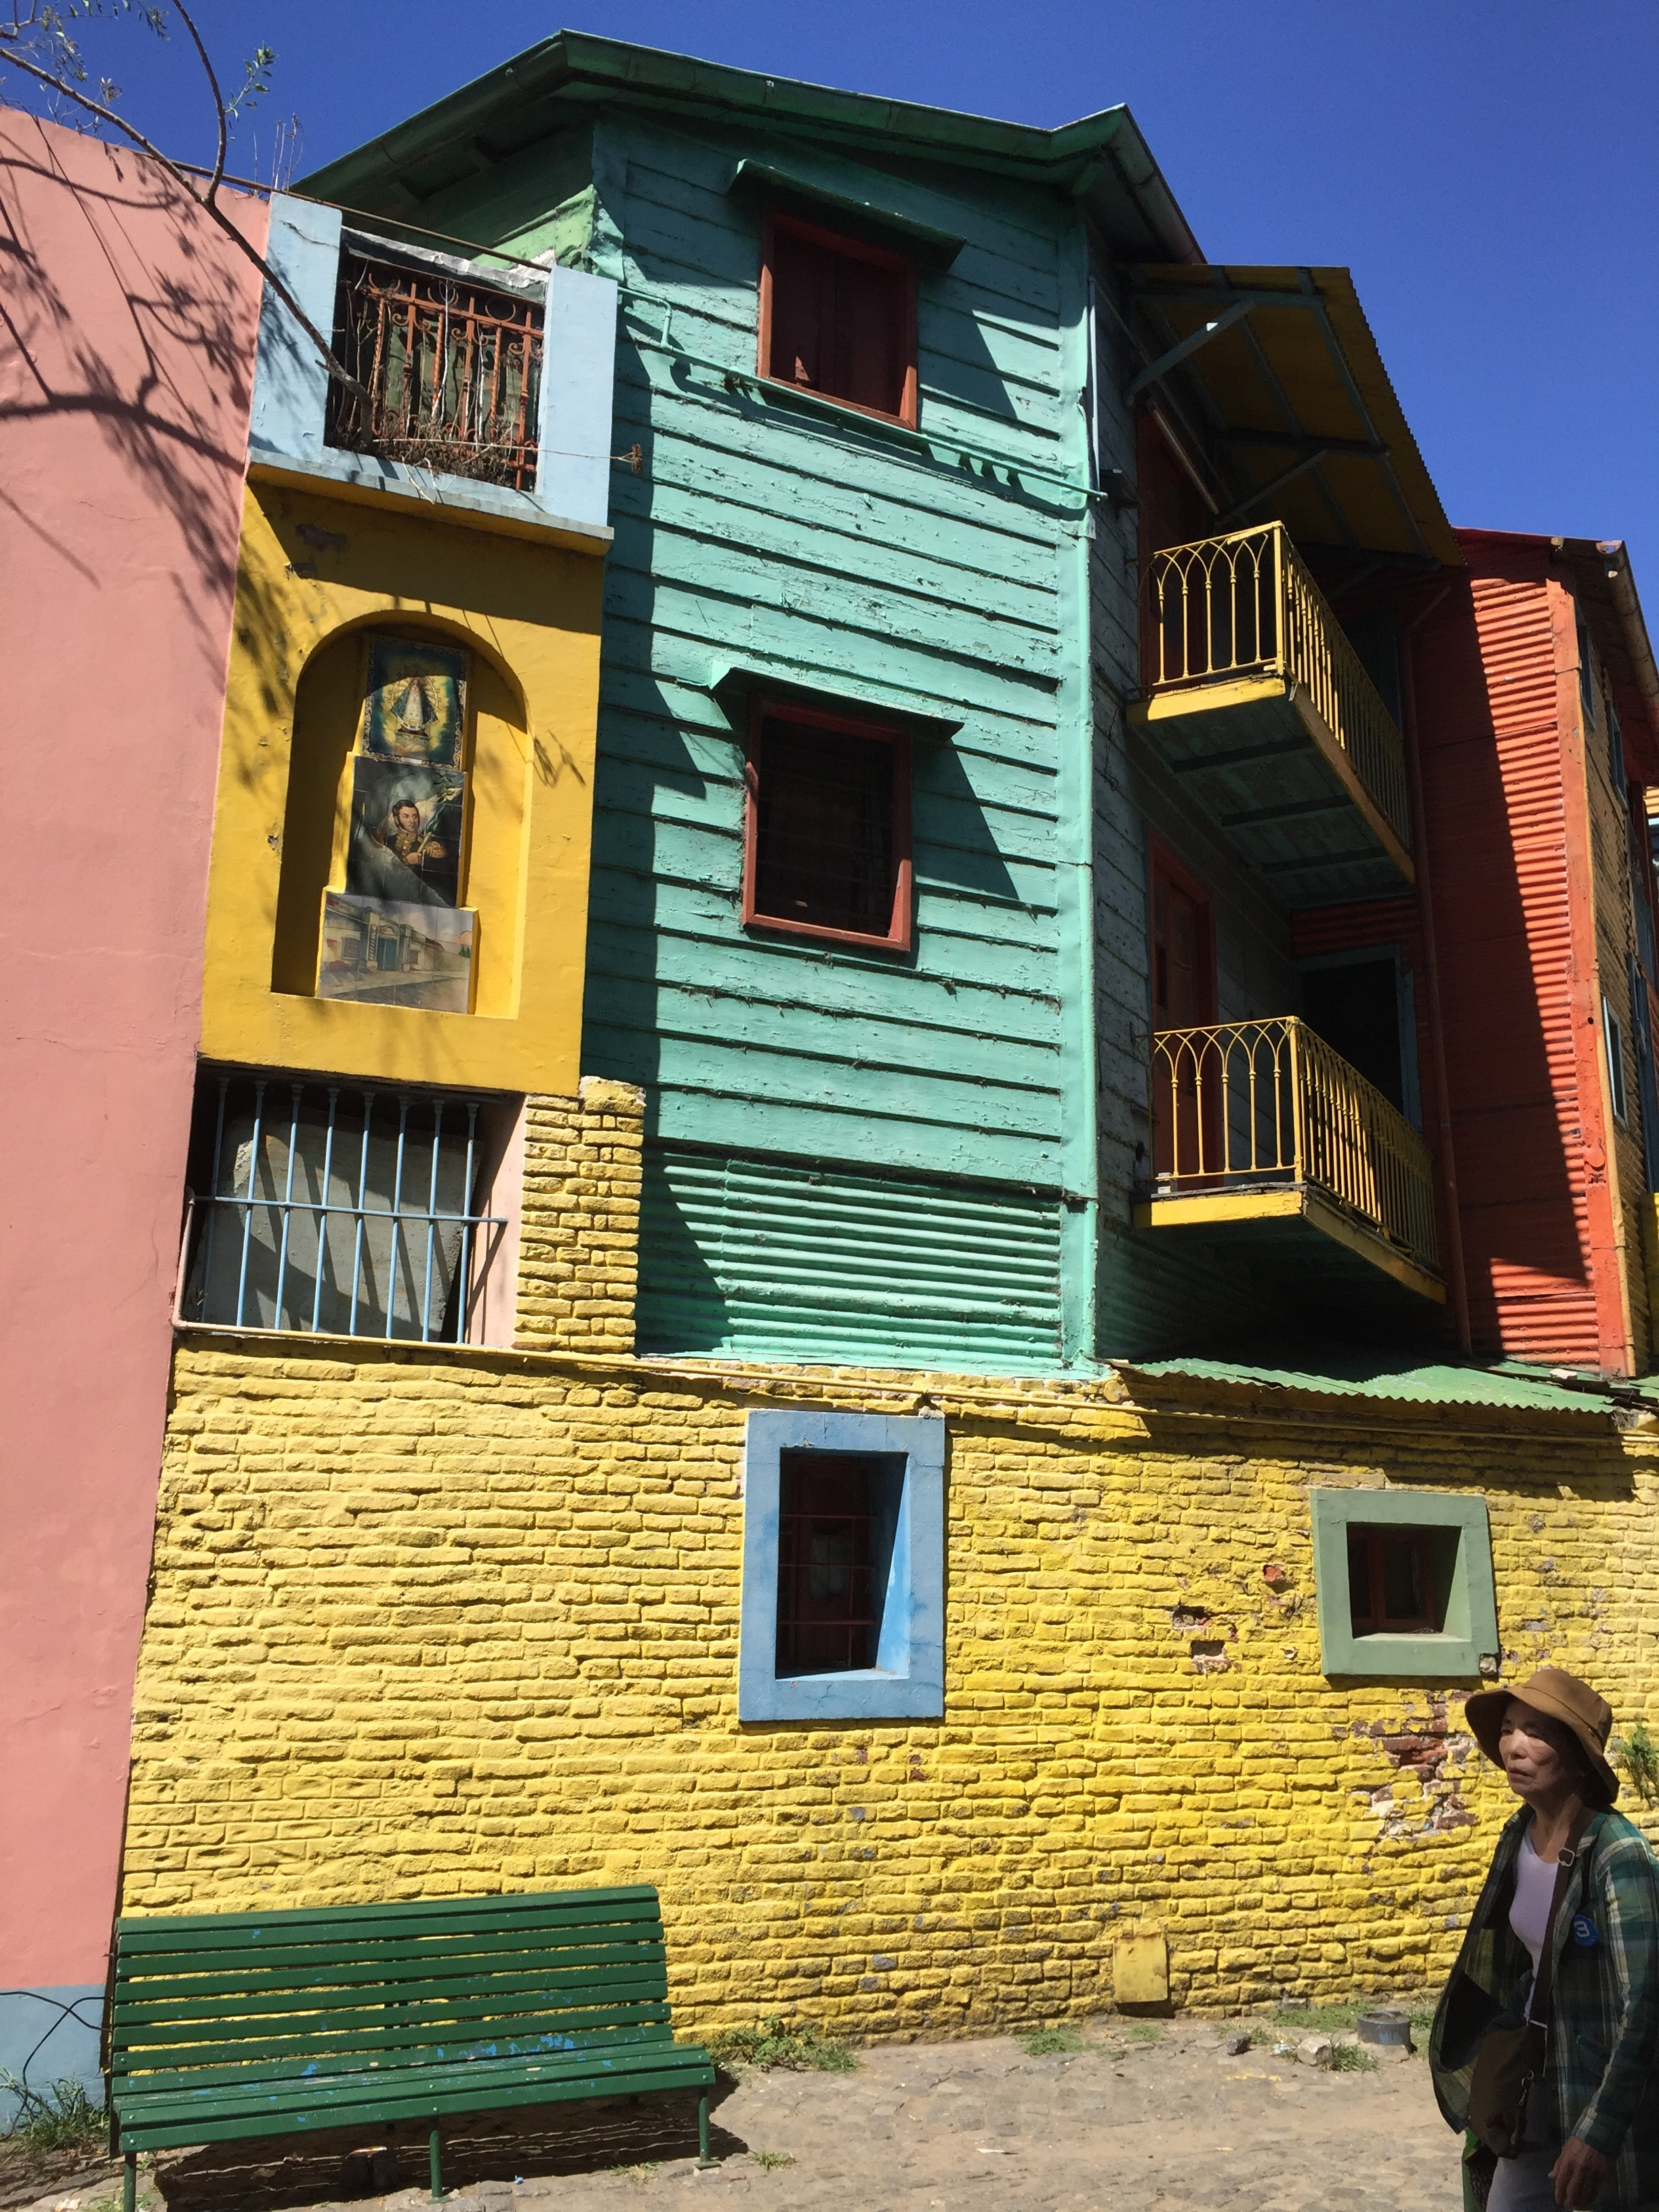 The buildings in the La Boca District are colorfully engaging.